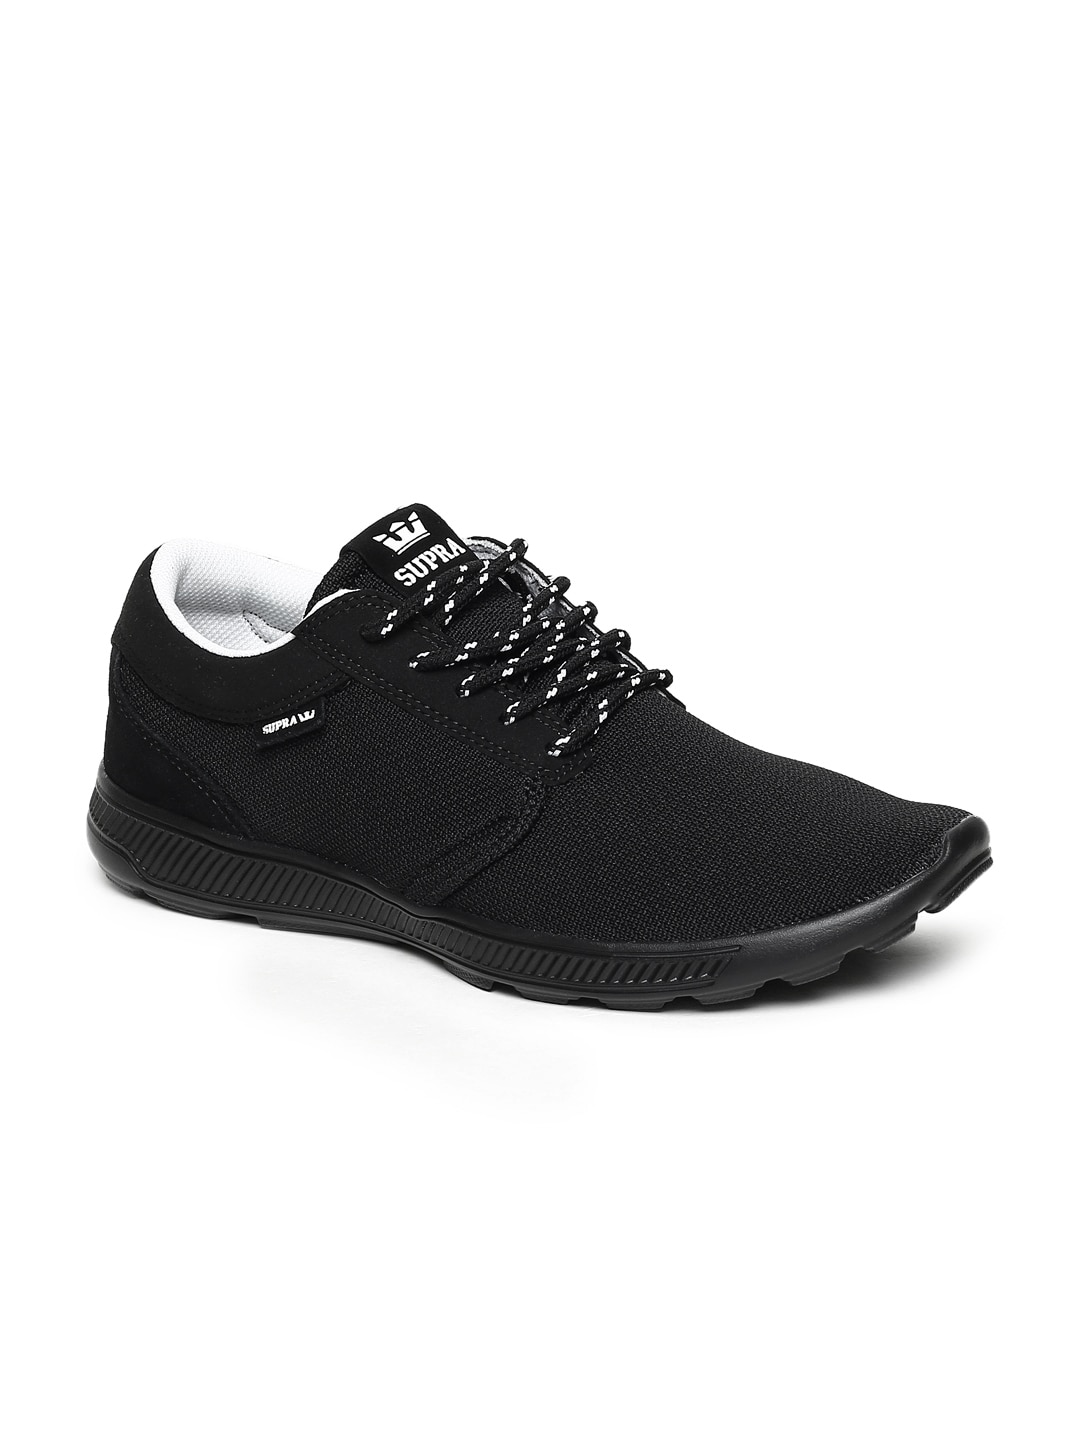 a27b60c00bb2 Supra - Exclusive Supra Online Store in India at Myntra